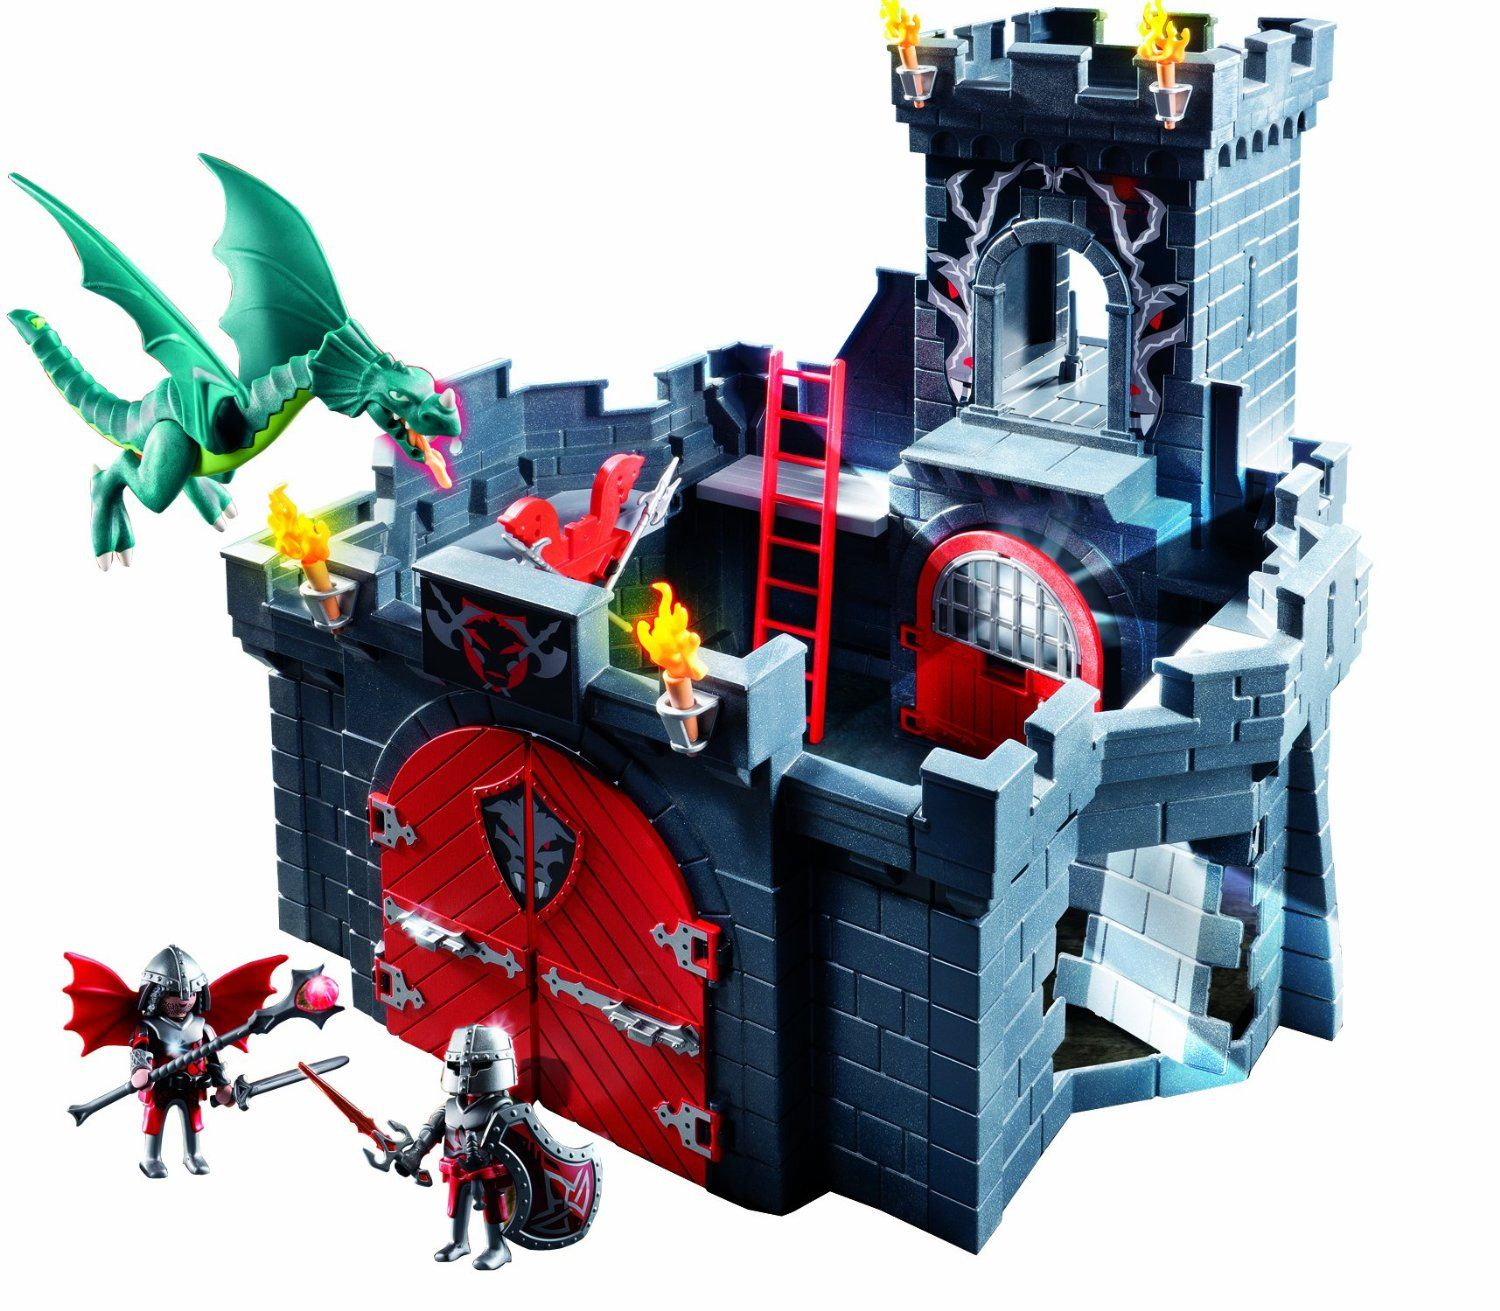 amazonsmile playmobil dragon knights castle toys games edad media pinterest playmobil. Black Bedroom Furniture Sets. Home Design Ideas